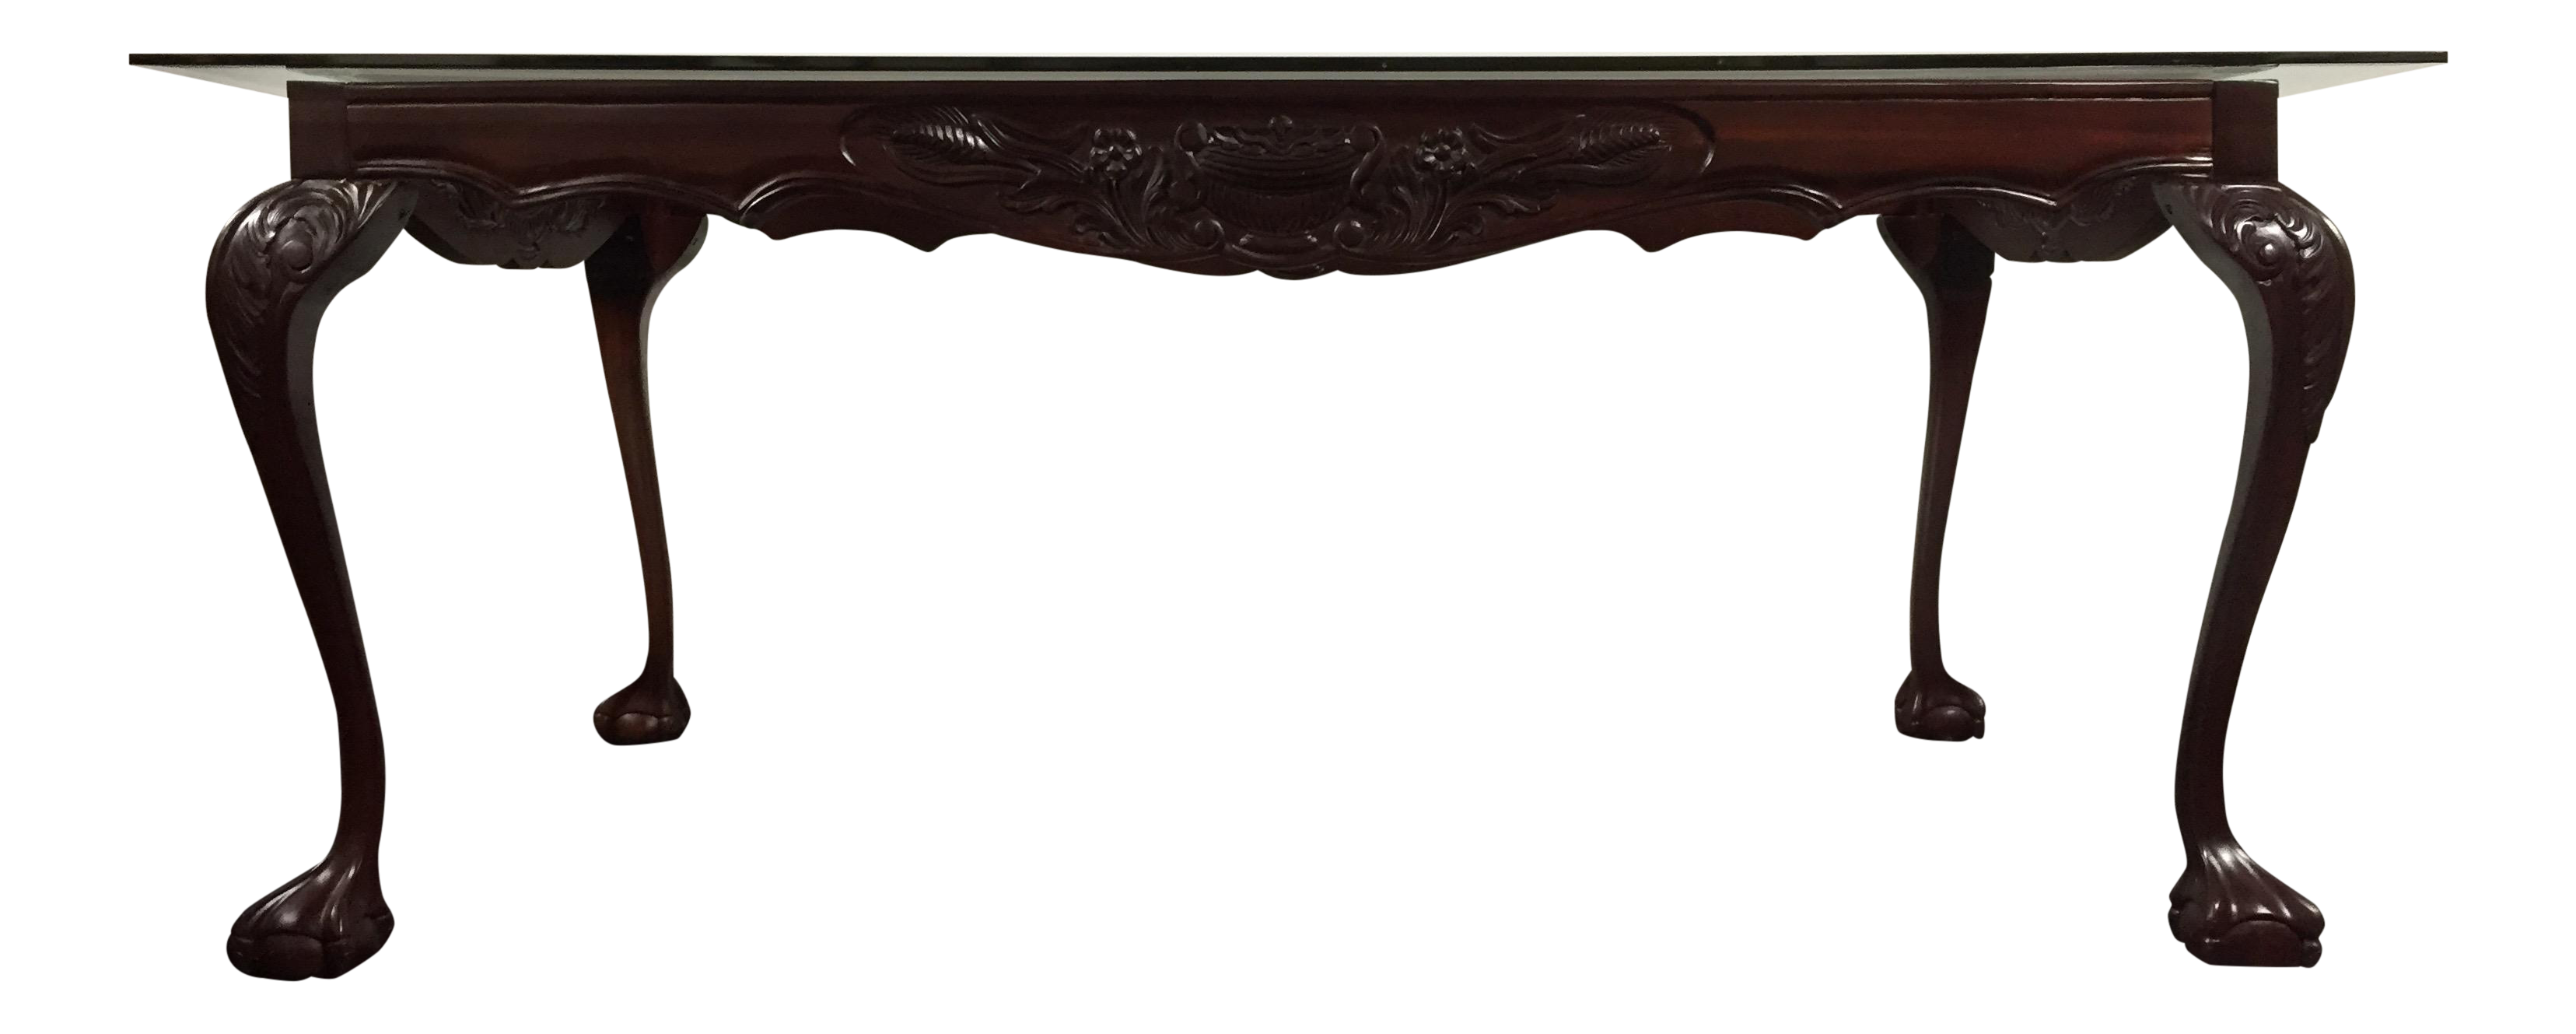 Chippendale Mahogany Dining Table With Glass Top Chairish : 879d9409 7fb1 4b3b bf2e 6b6c27b32d52 from www.chairish.com size 3312 x 1329 png 967kB